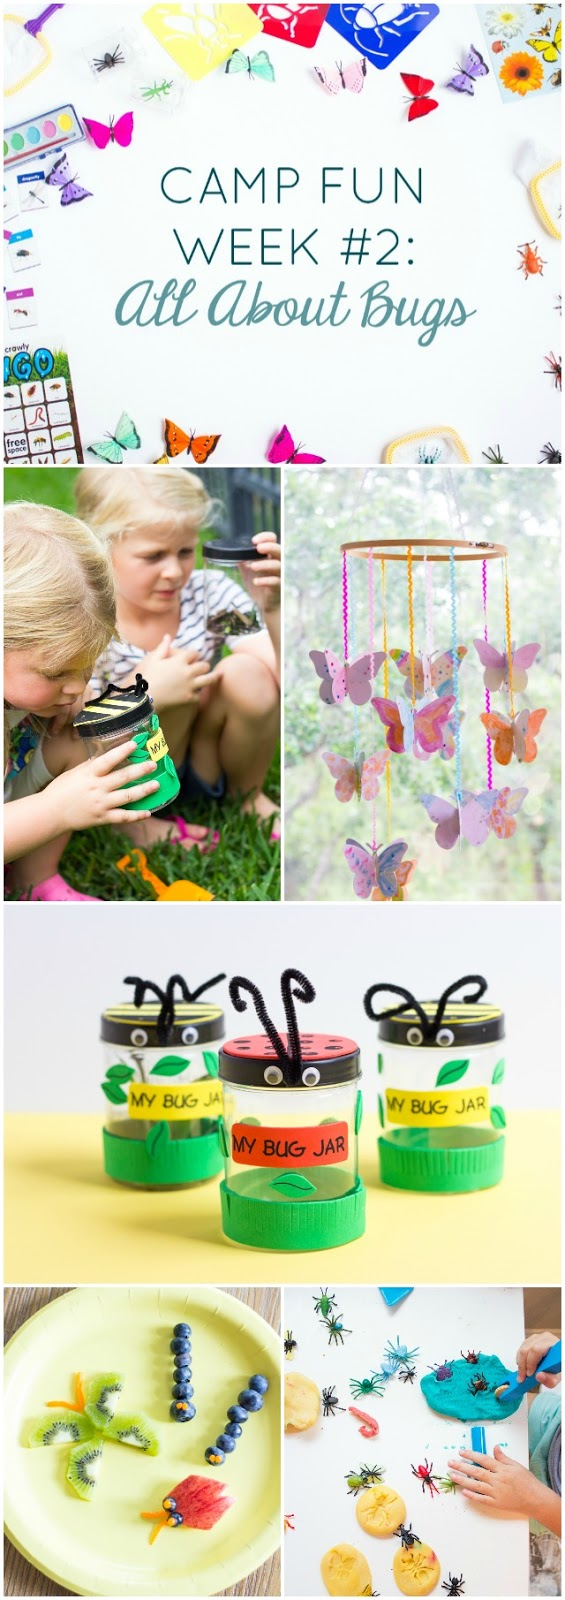 "Camp Fun ""All About Bugs"" - check out all these creepy crawly bug activities for kids summer camp at home!"